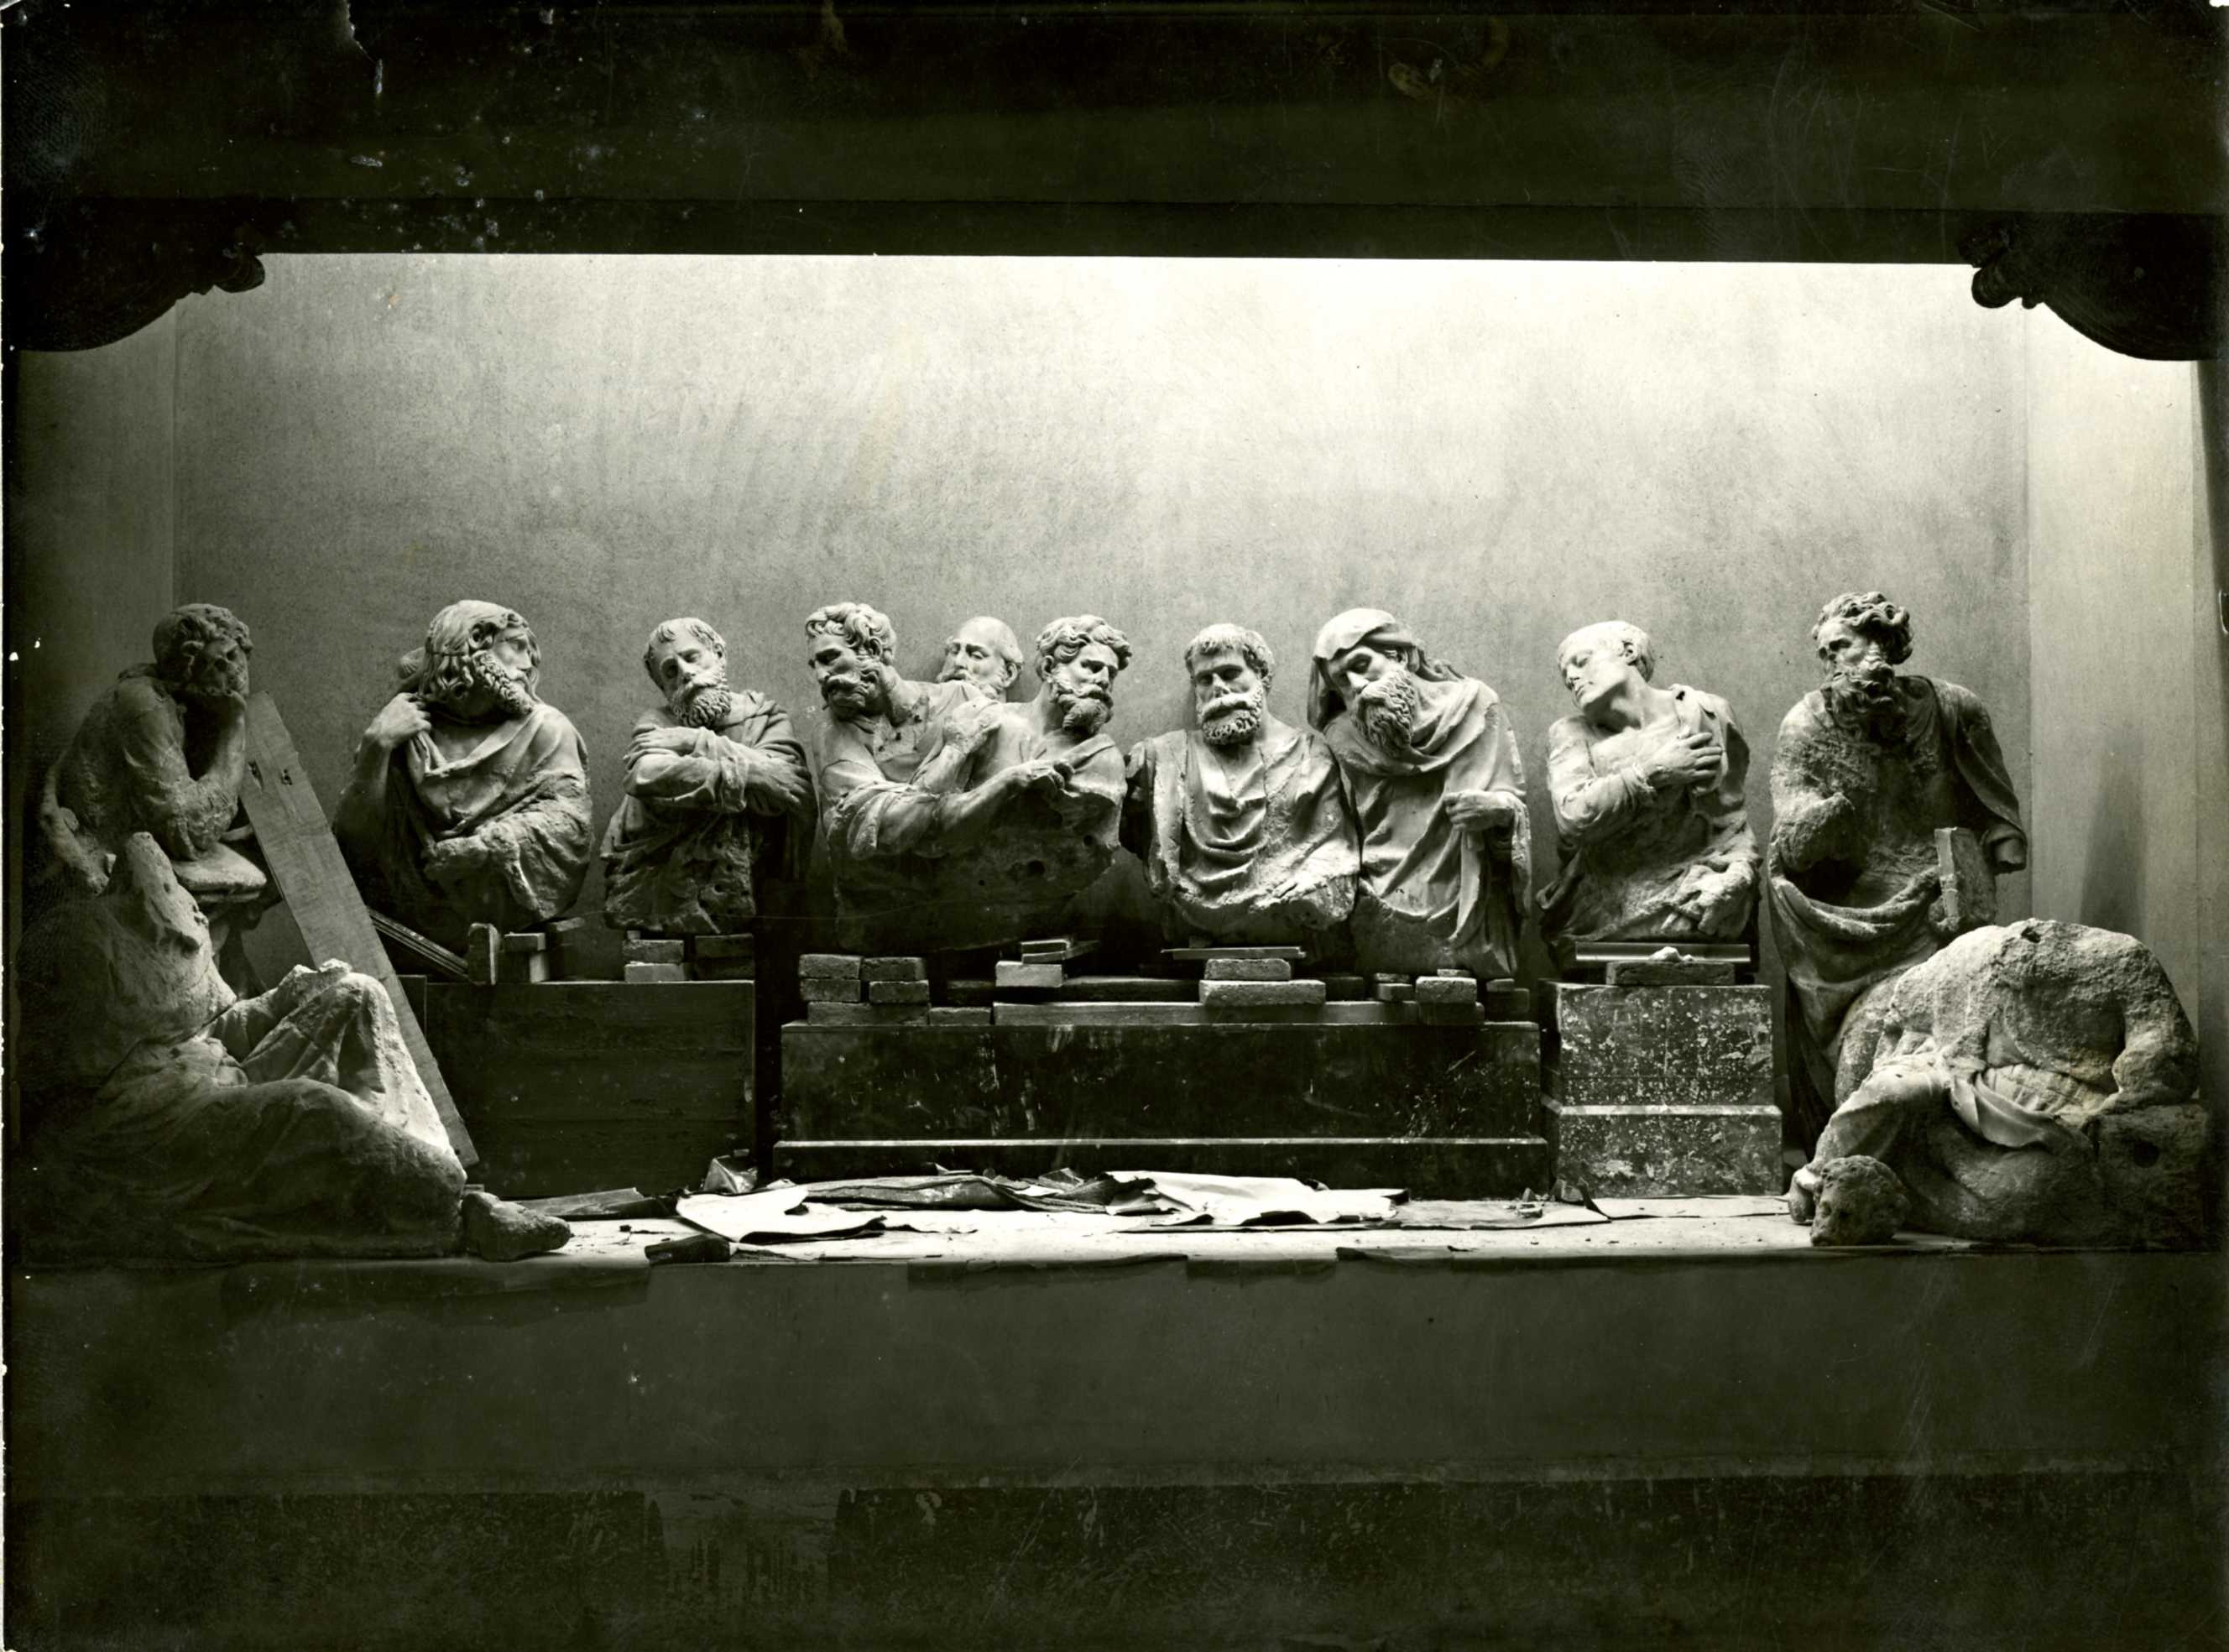 Assembly of the artwork in 1934